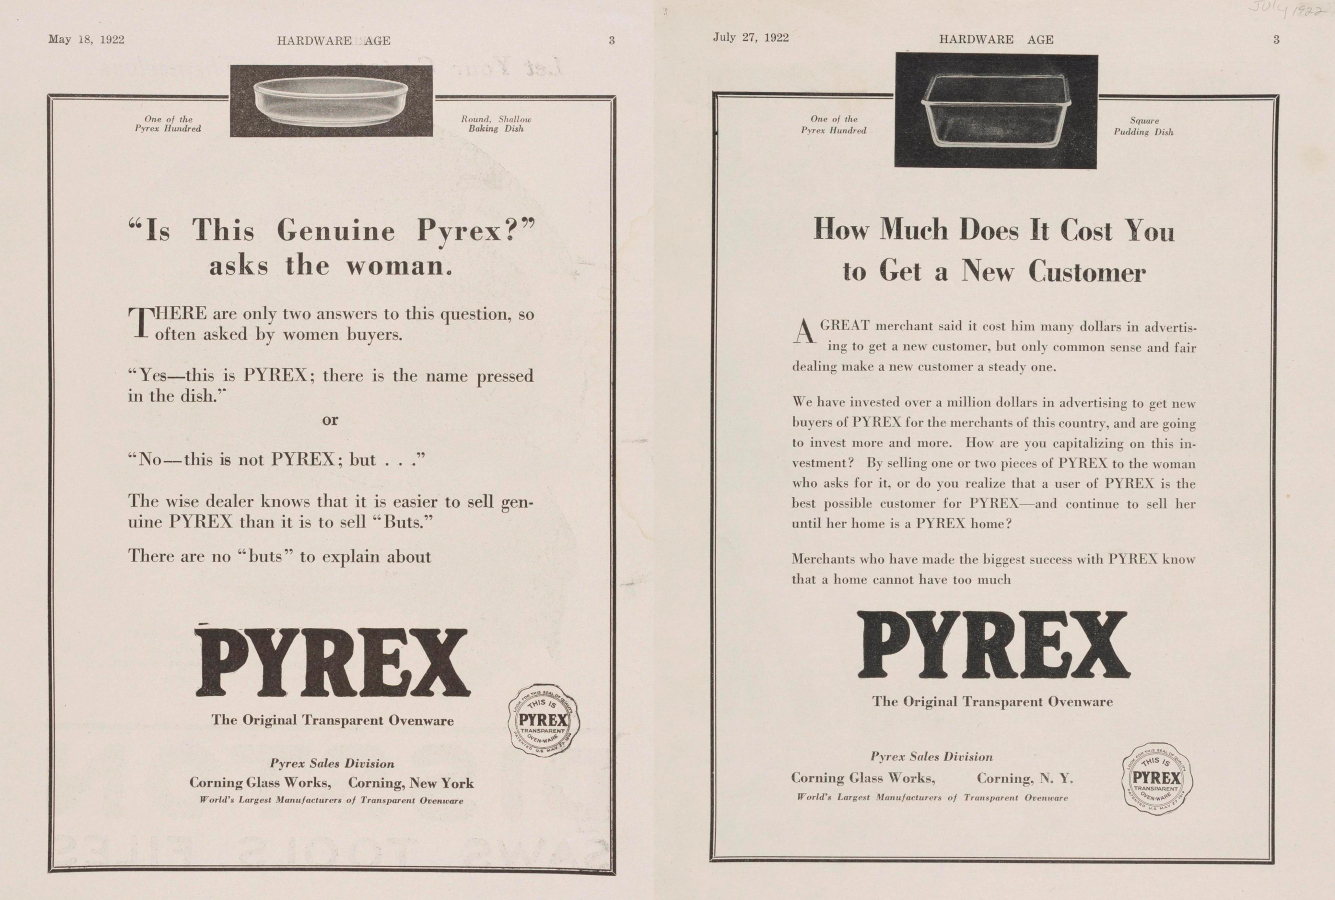 Pyrex advertisements from Corning Glass Works/Hardware Age